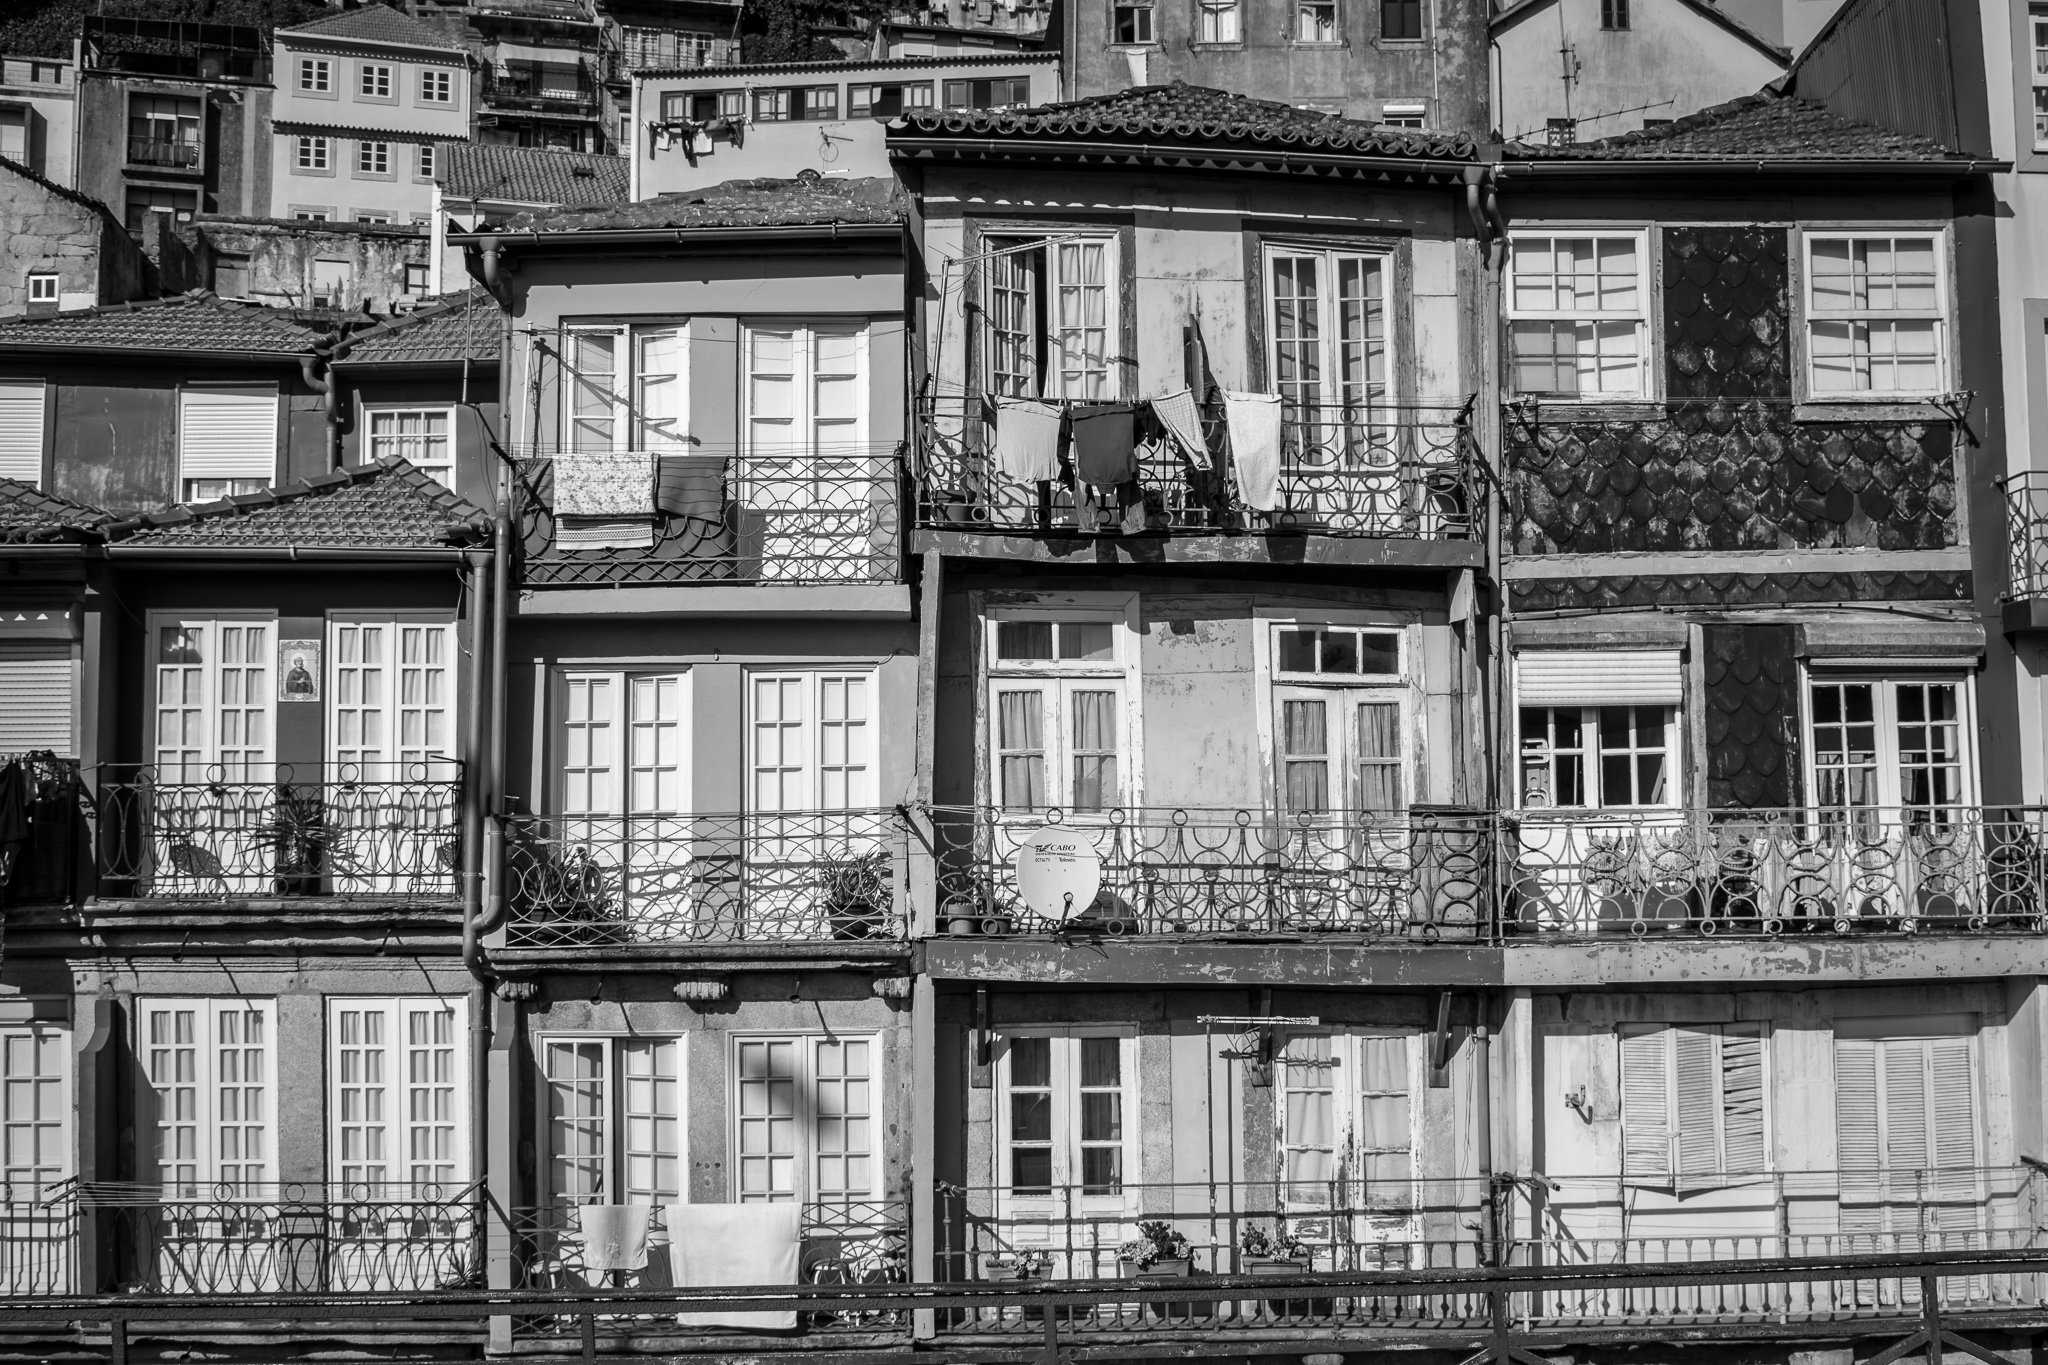 Ribeira, located in the old part of the city and very close to the banks of the Duero, is one of the most romantic neighborhoods in Porto. <br>Declared a World Heritage Site, its narrow streets, its old buildings, and its medieval aspect give the neighborhood a wonderful and unique bohemian atmosphere.